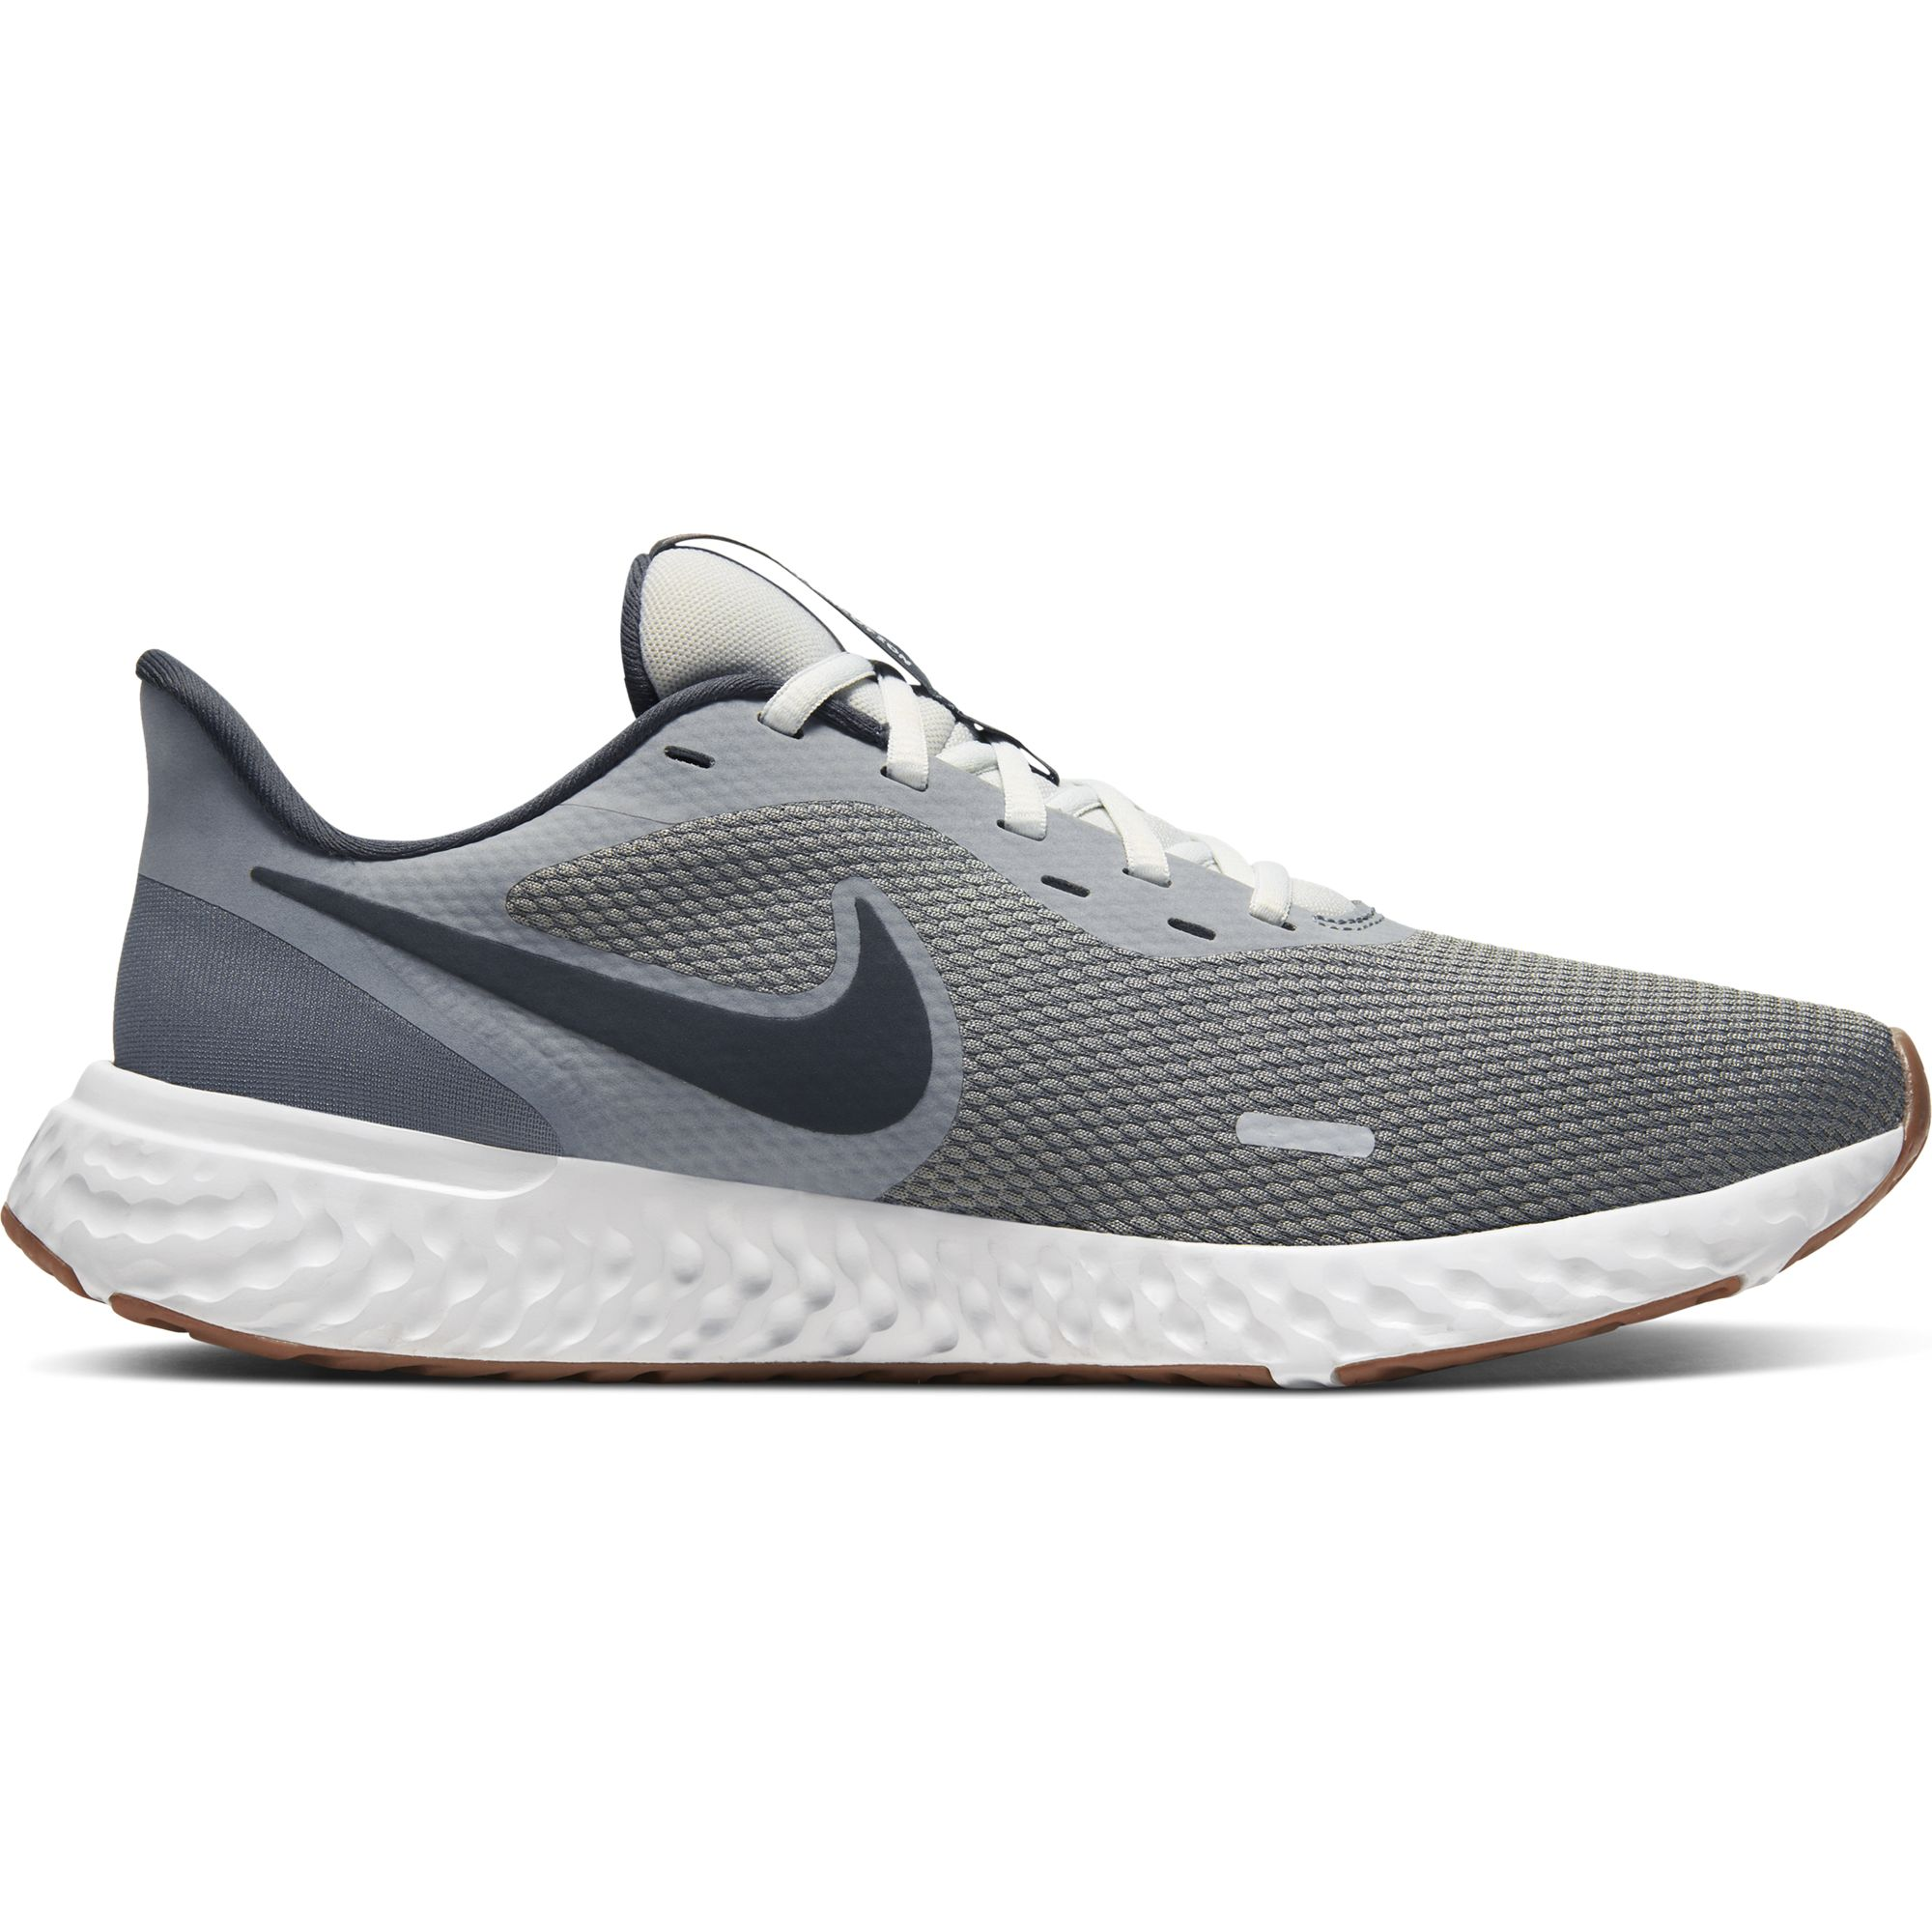 Men's Revolution 5 Running Shoes, Gray/Lime, swatch